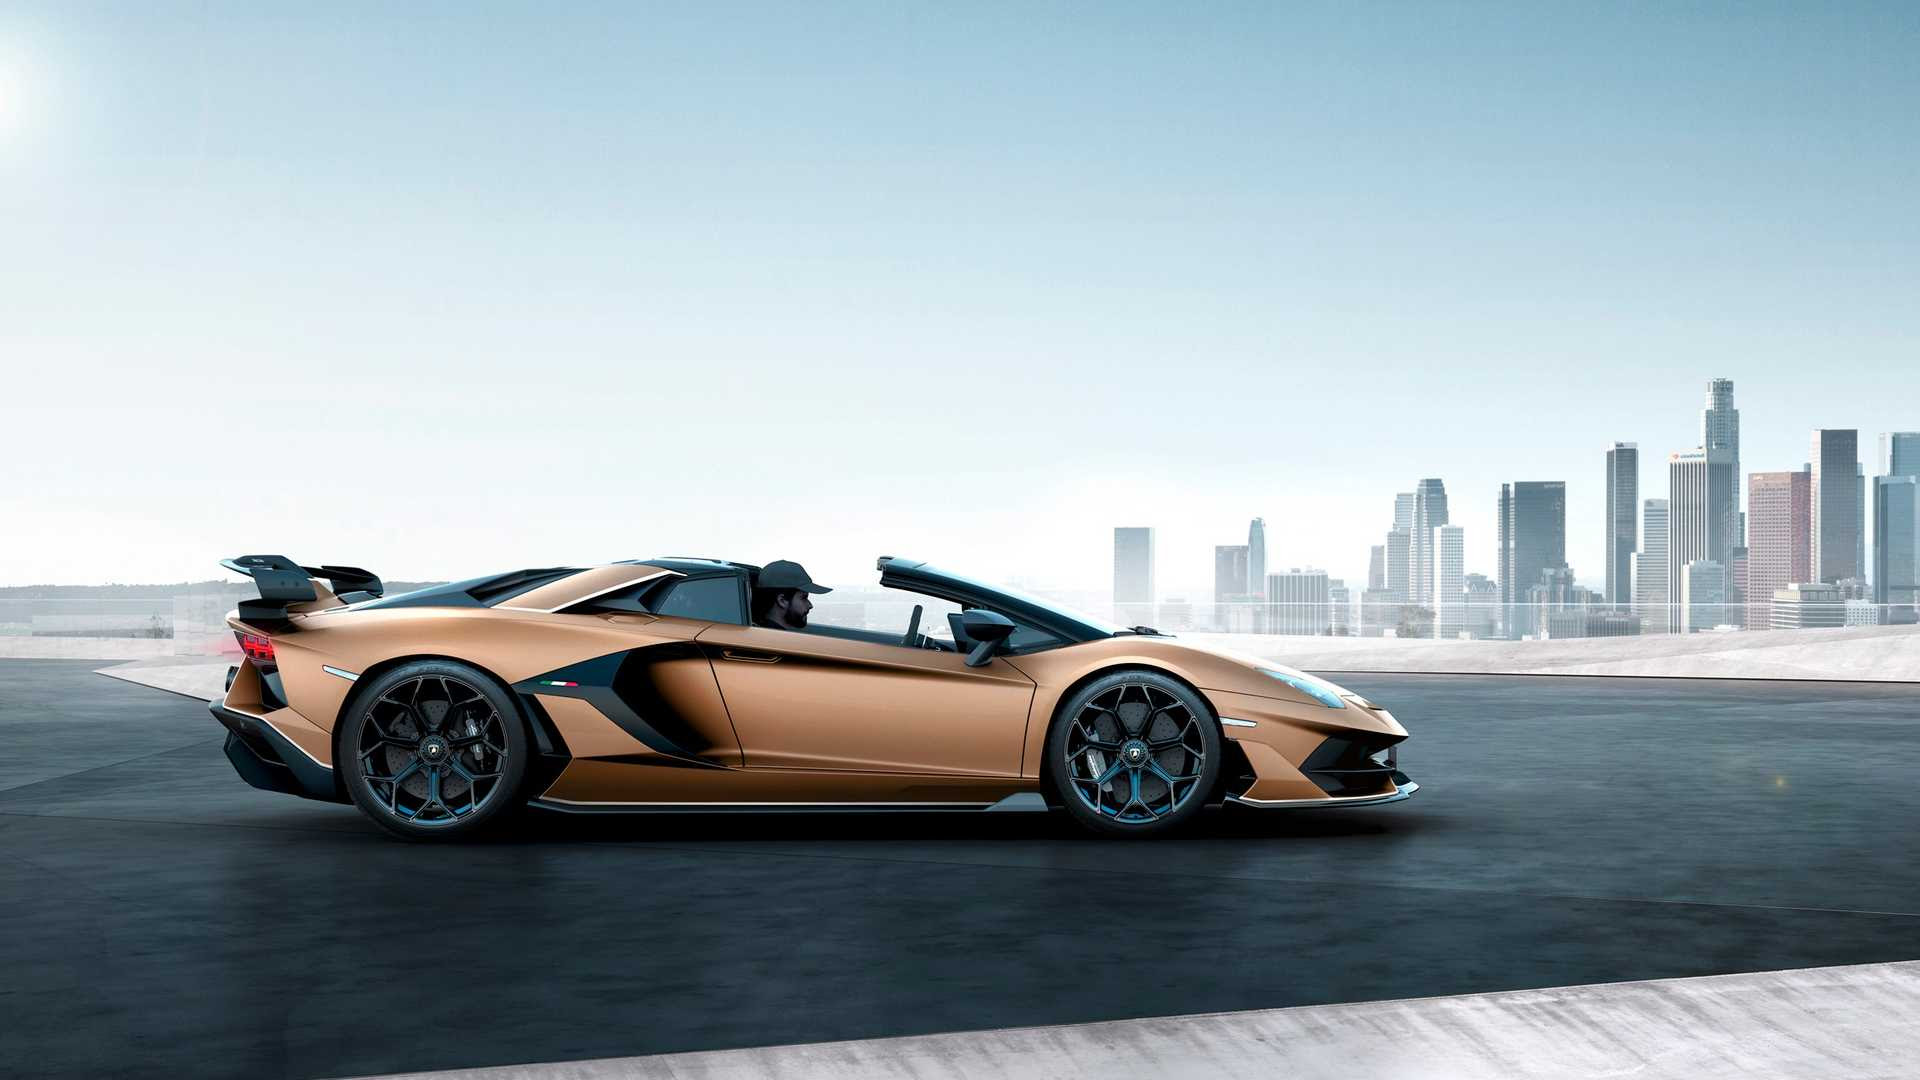 2020 Lamborghini Aventador Svj Roadster Wallpapers 35 Hd Images